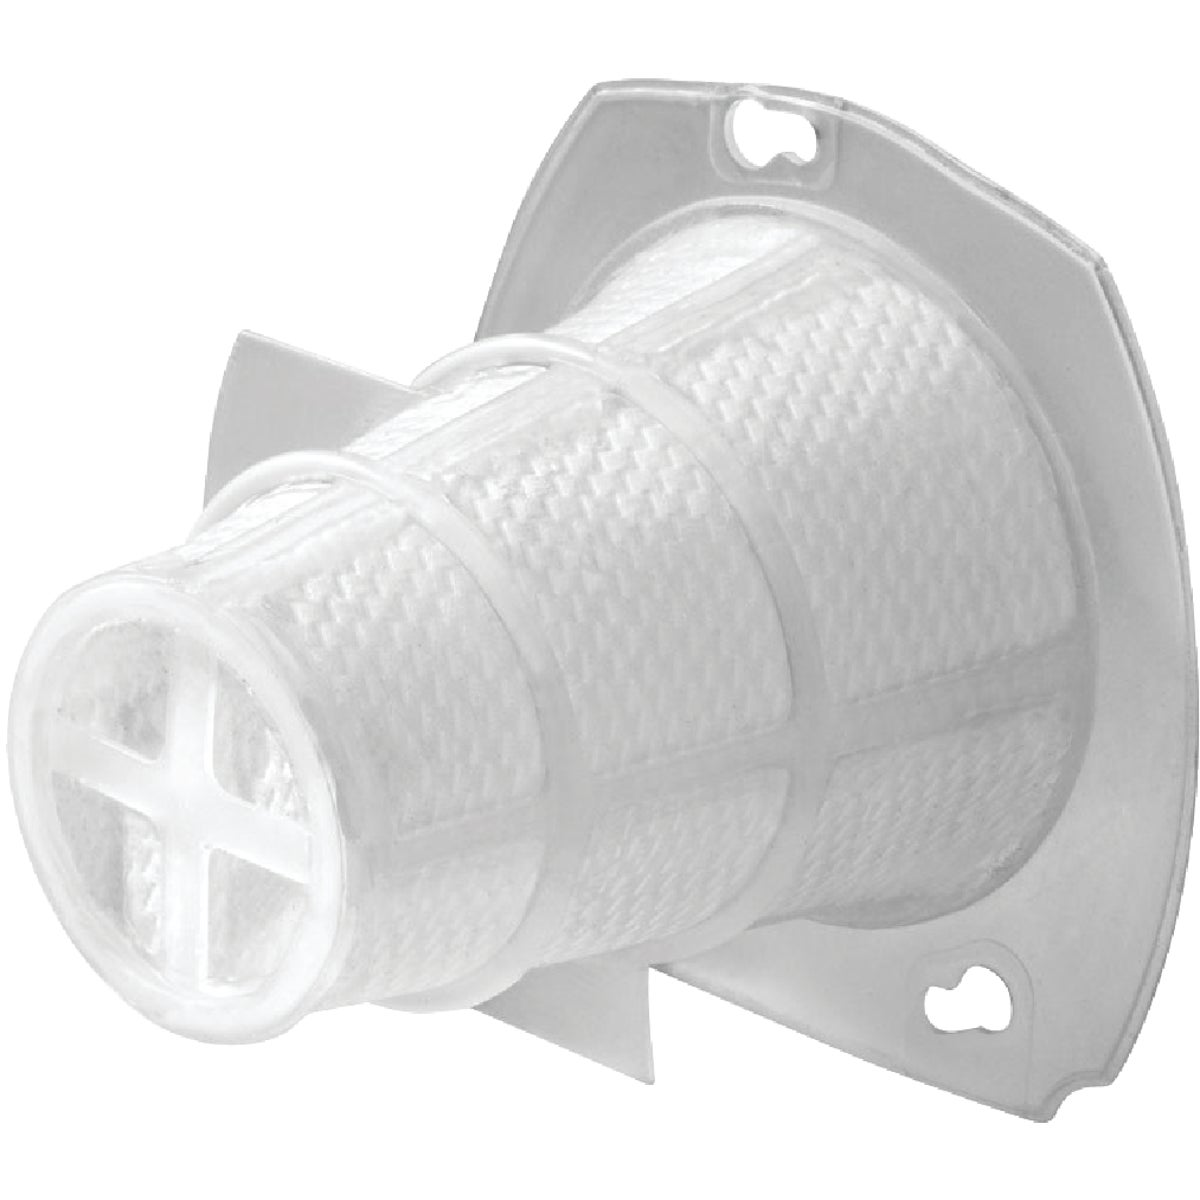 REPLACEMENT FILTER - VF96 by Black & Decker